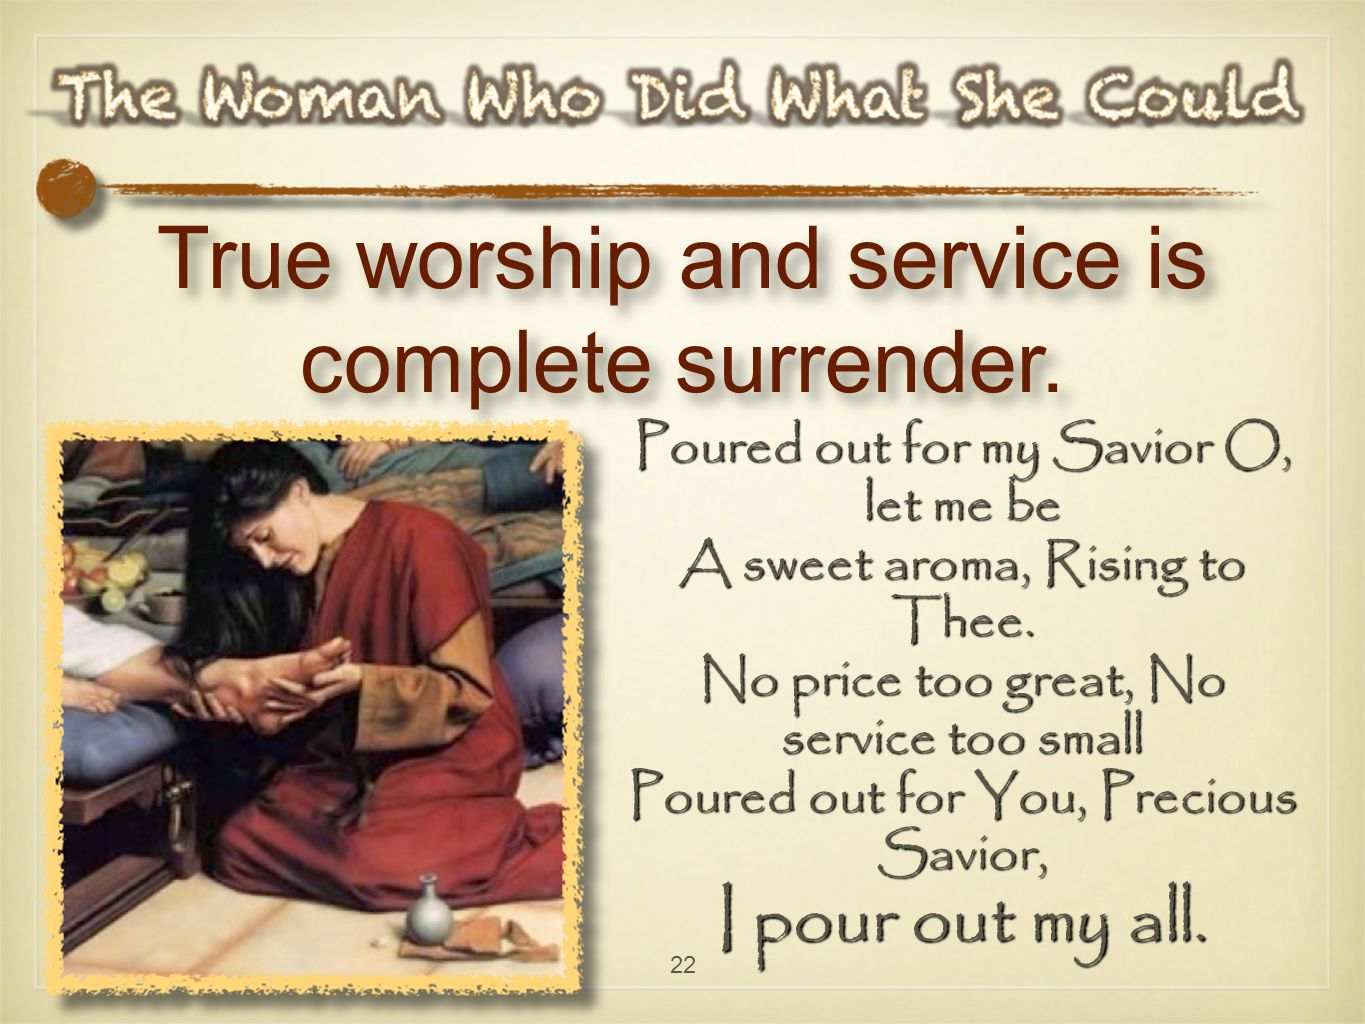 22 True worship and service is complete surrender.